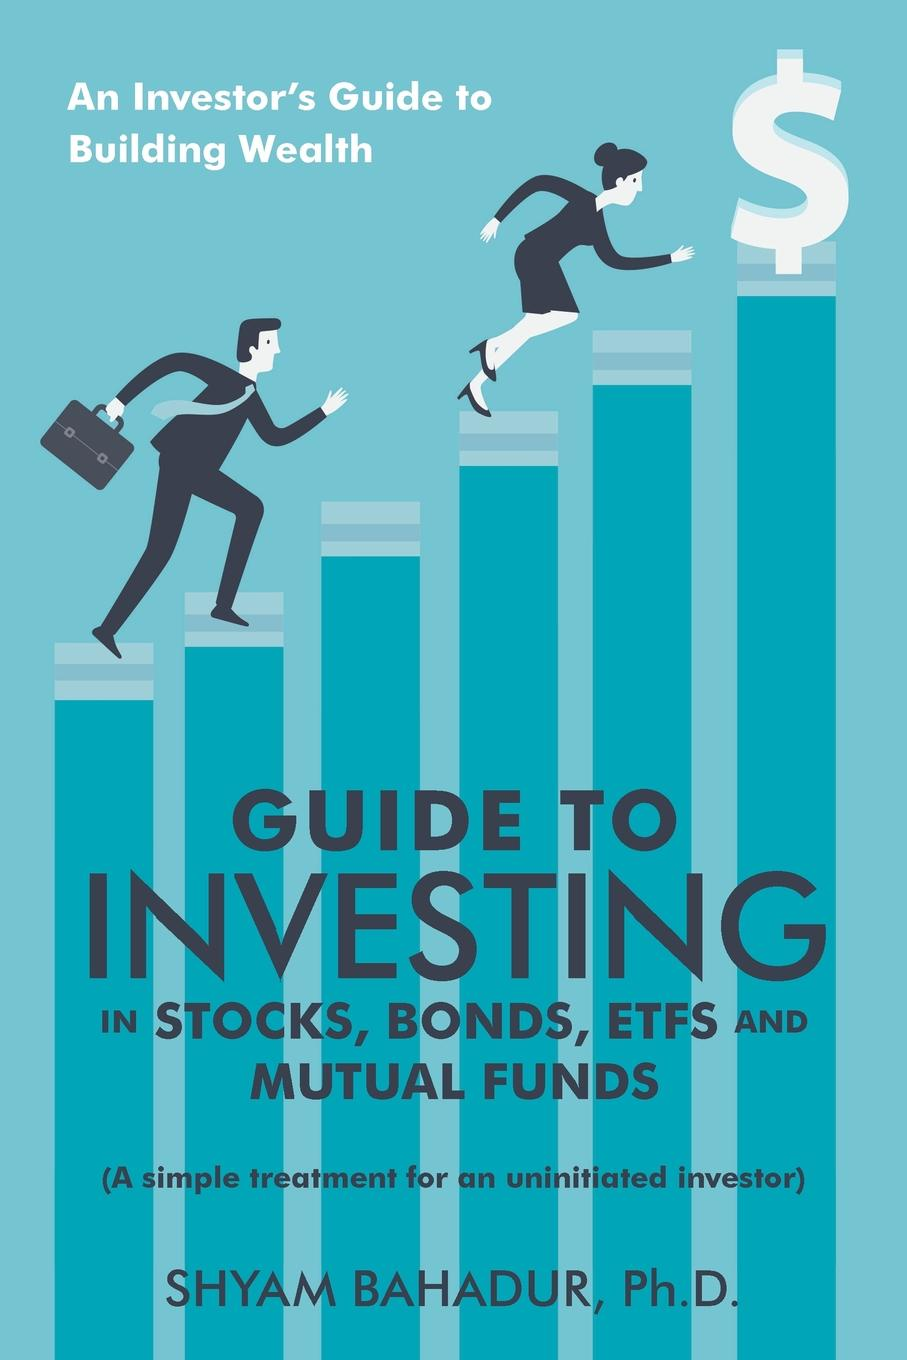 Ph.D. Shyam Bahadur Guide to Investing in Stocks, Bonds, Etfs and Mutual Funds. An Investor.S Guide to Building Wealth eric tyson mutual funds for dummies